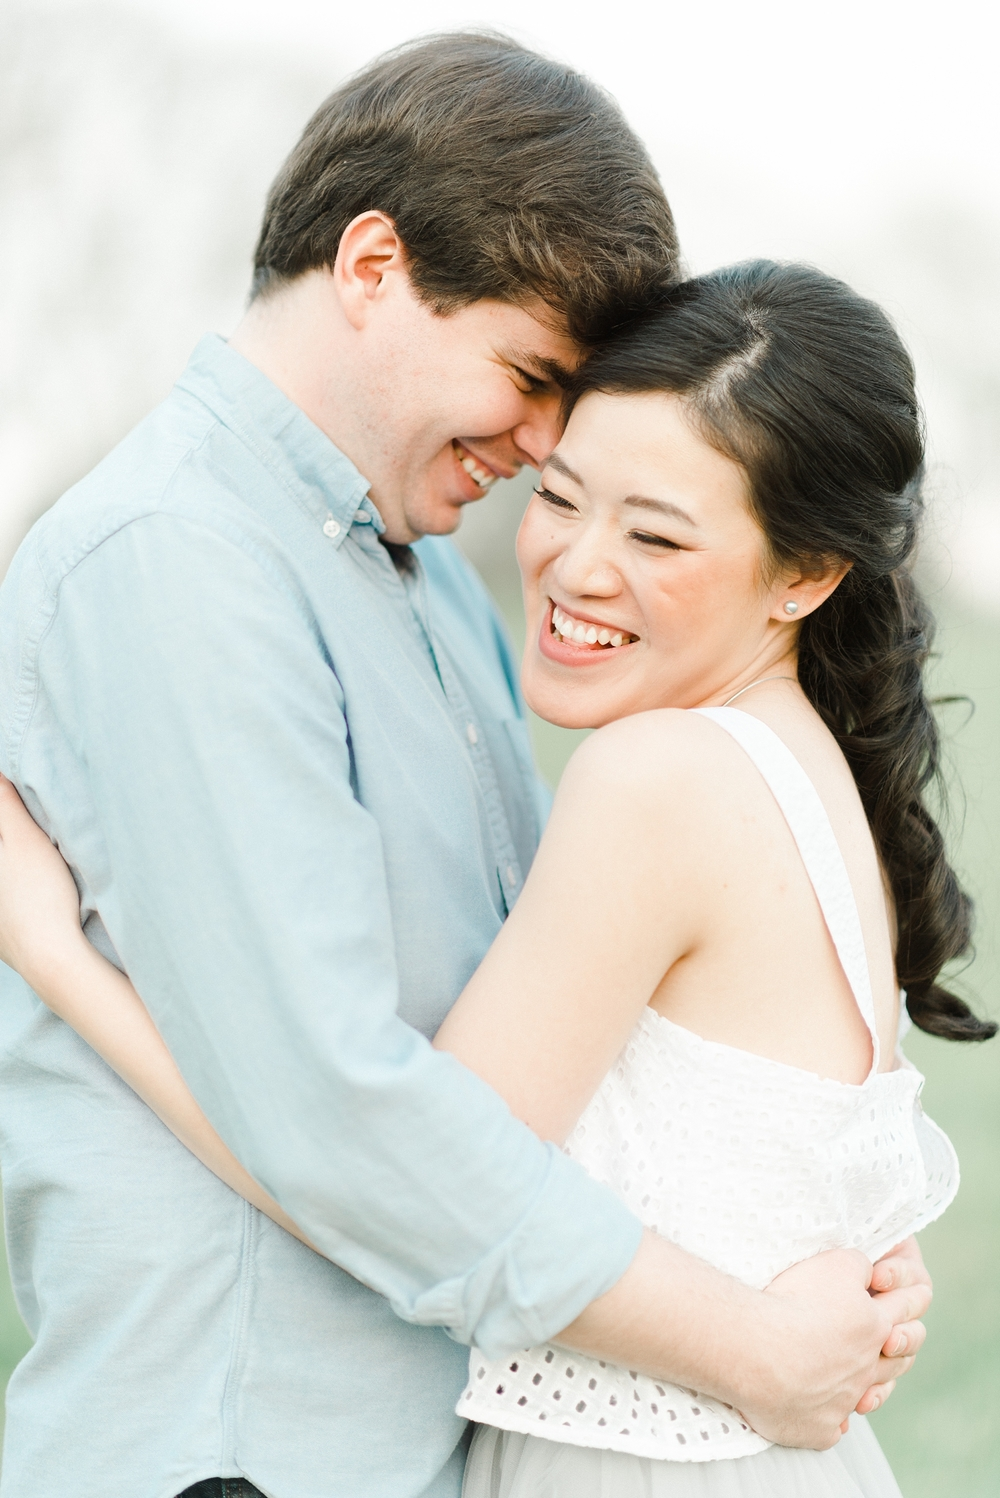 ash_lawn_charlottesville_couples_portraits_0014.jpg